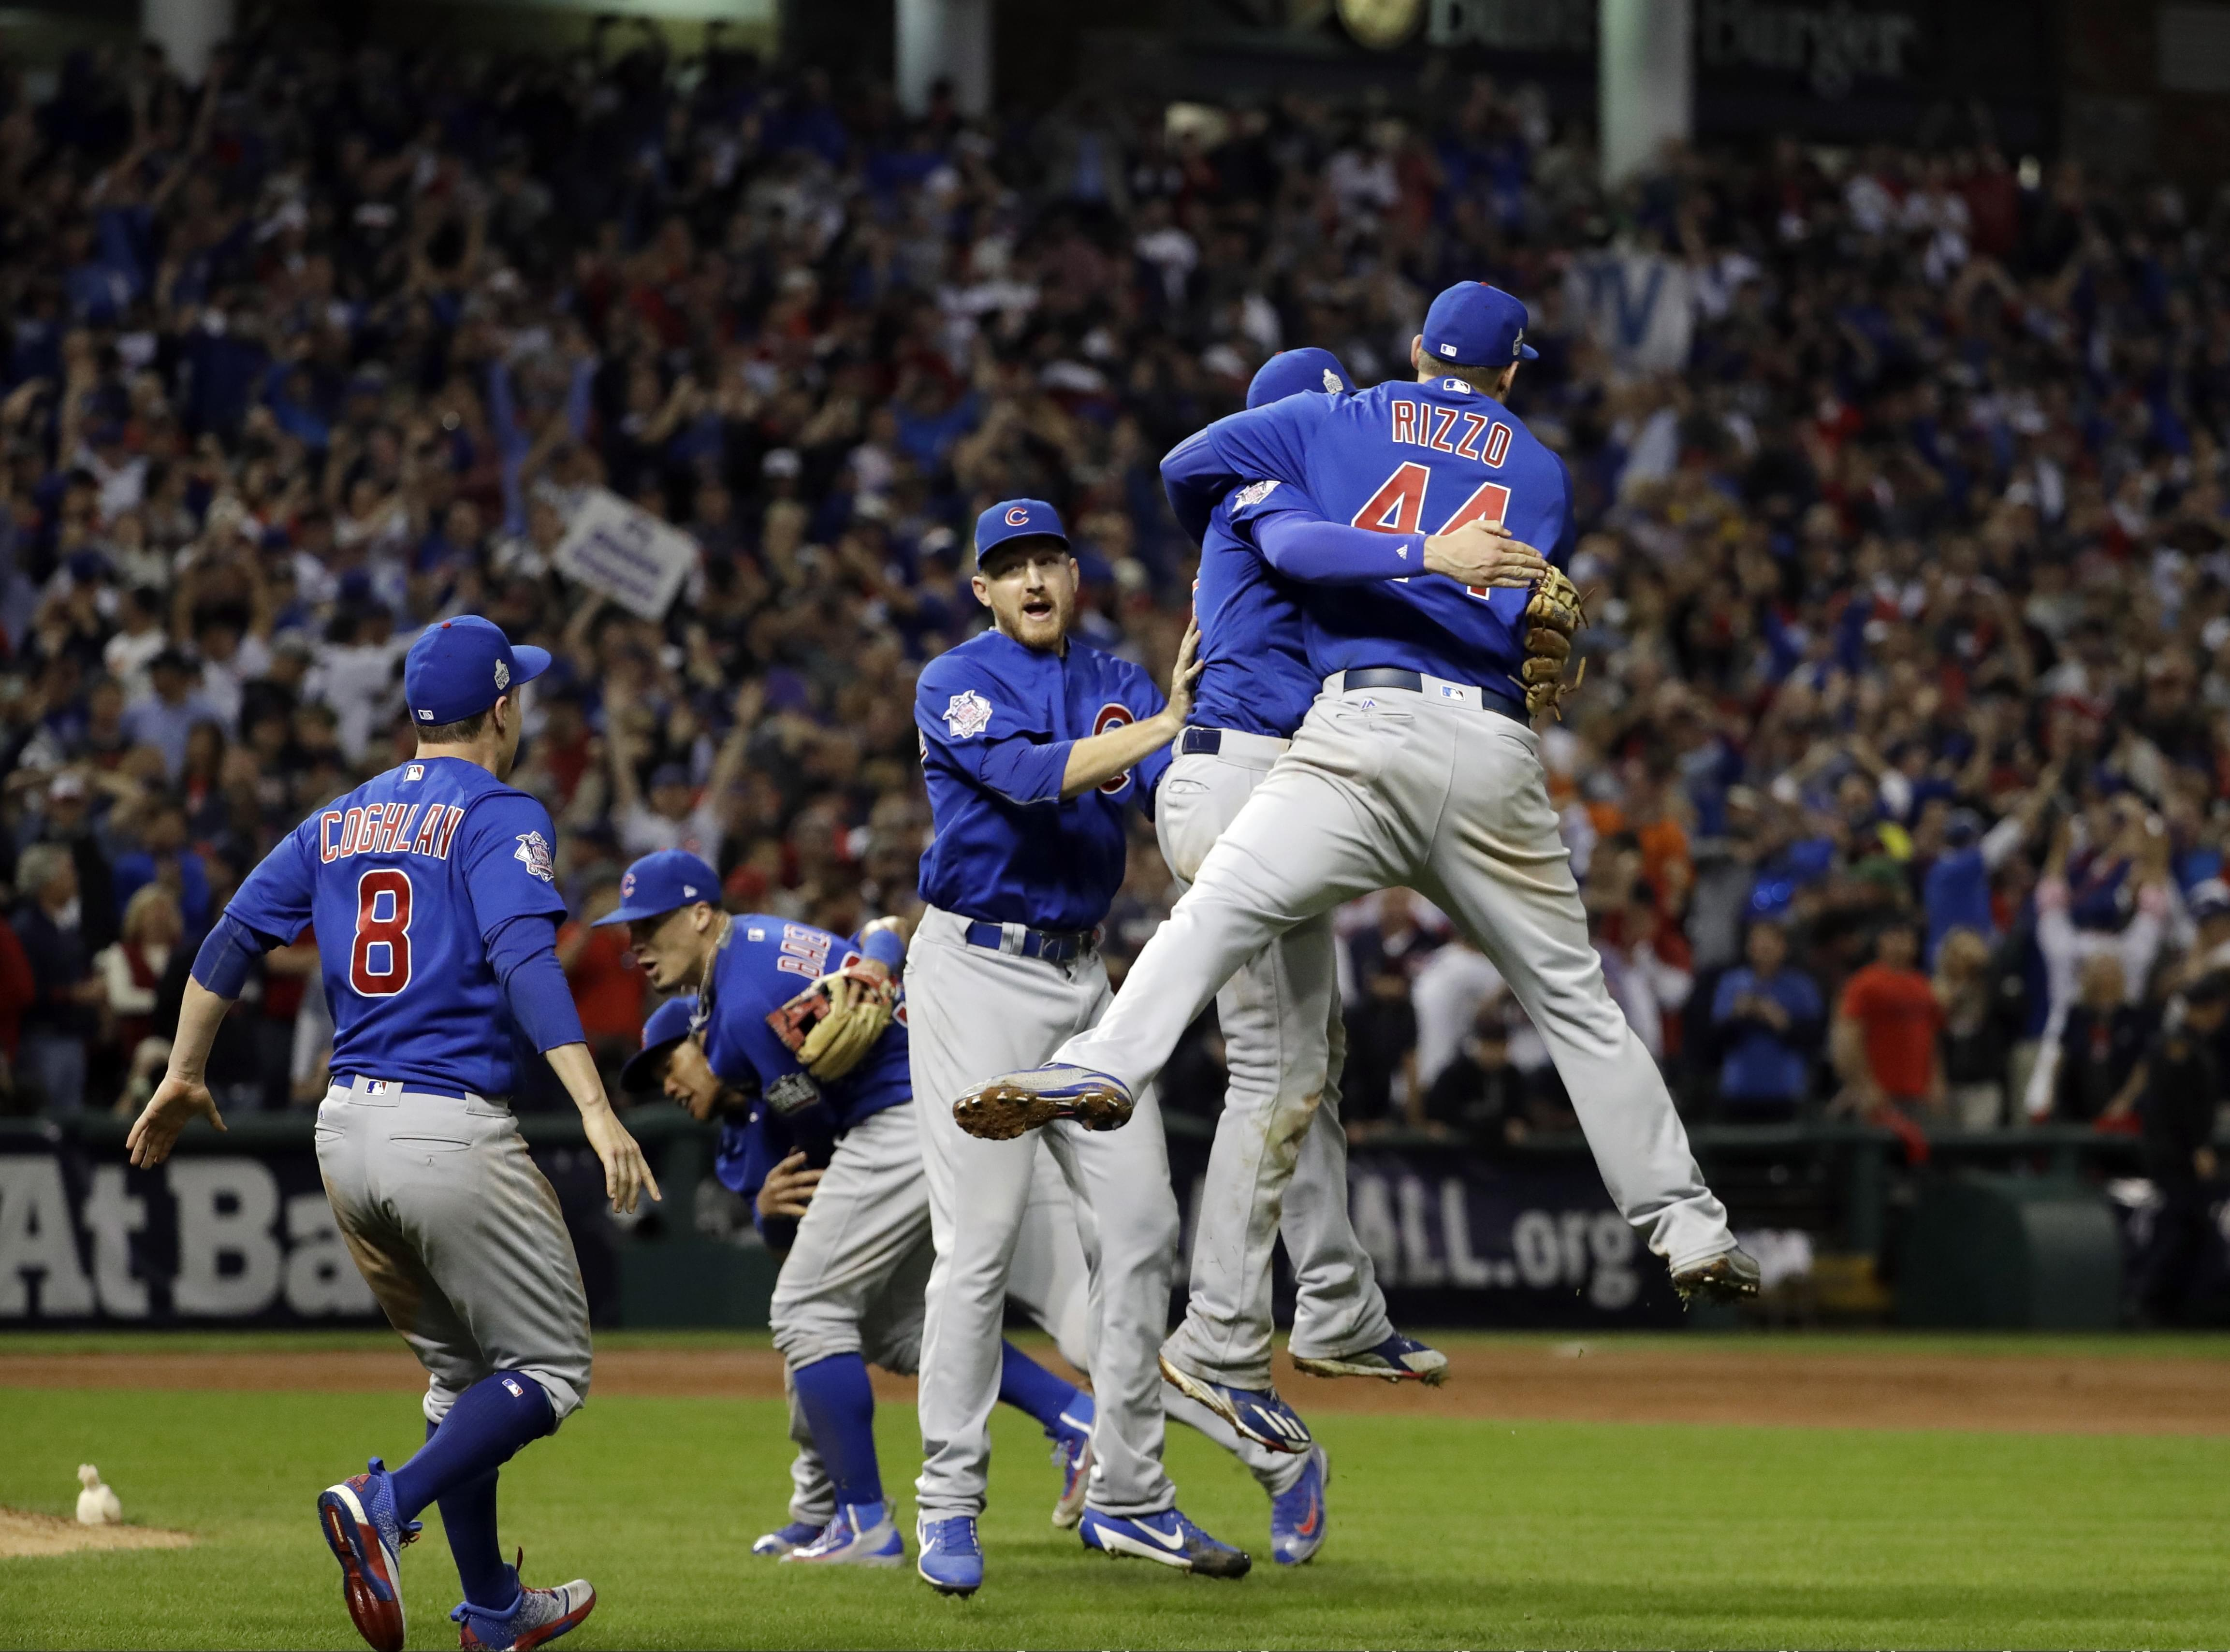 The Chicago Cubs celebrate after Game 7 of the  World Series against the Cleveland Indians Thursday, Nov. 3, 2016, in Cleveland. The Cubs won 8-7 in 10 innings to win the series 4-3.